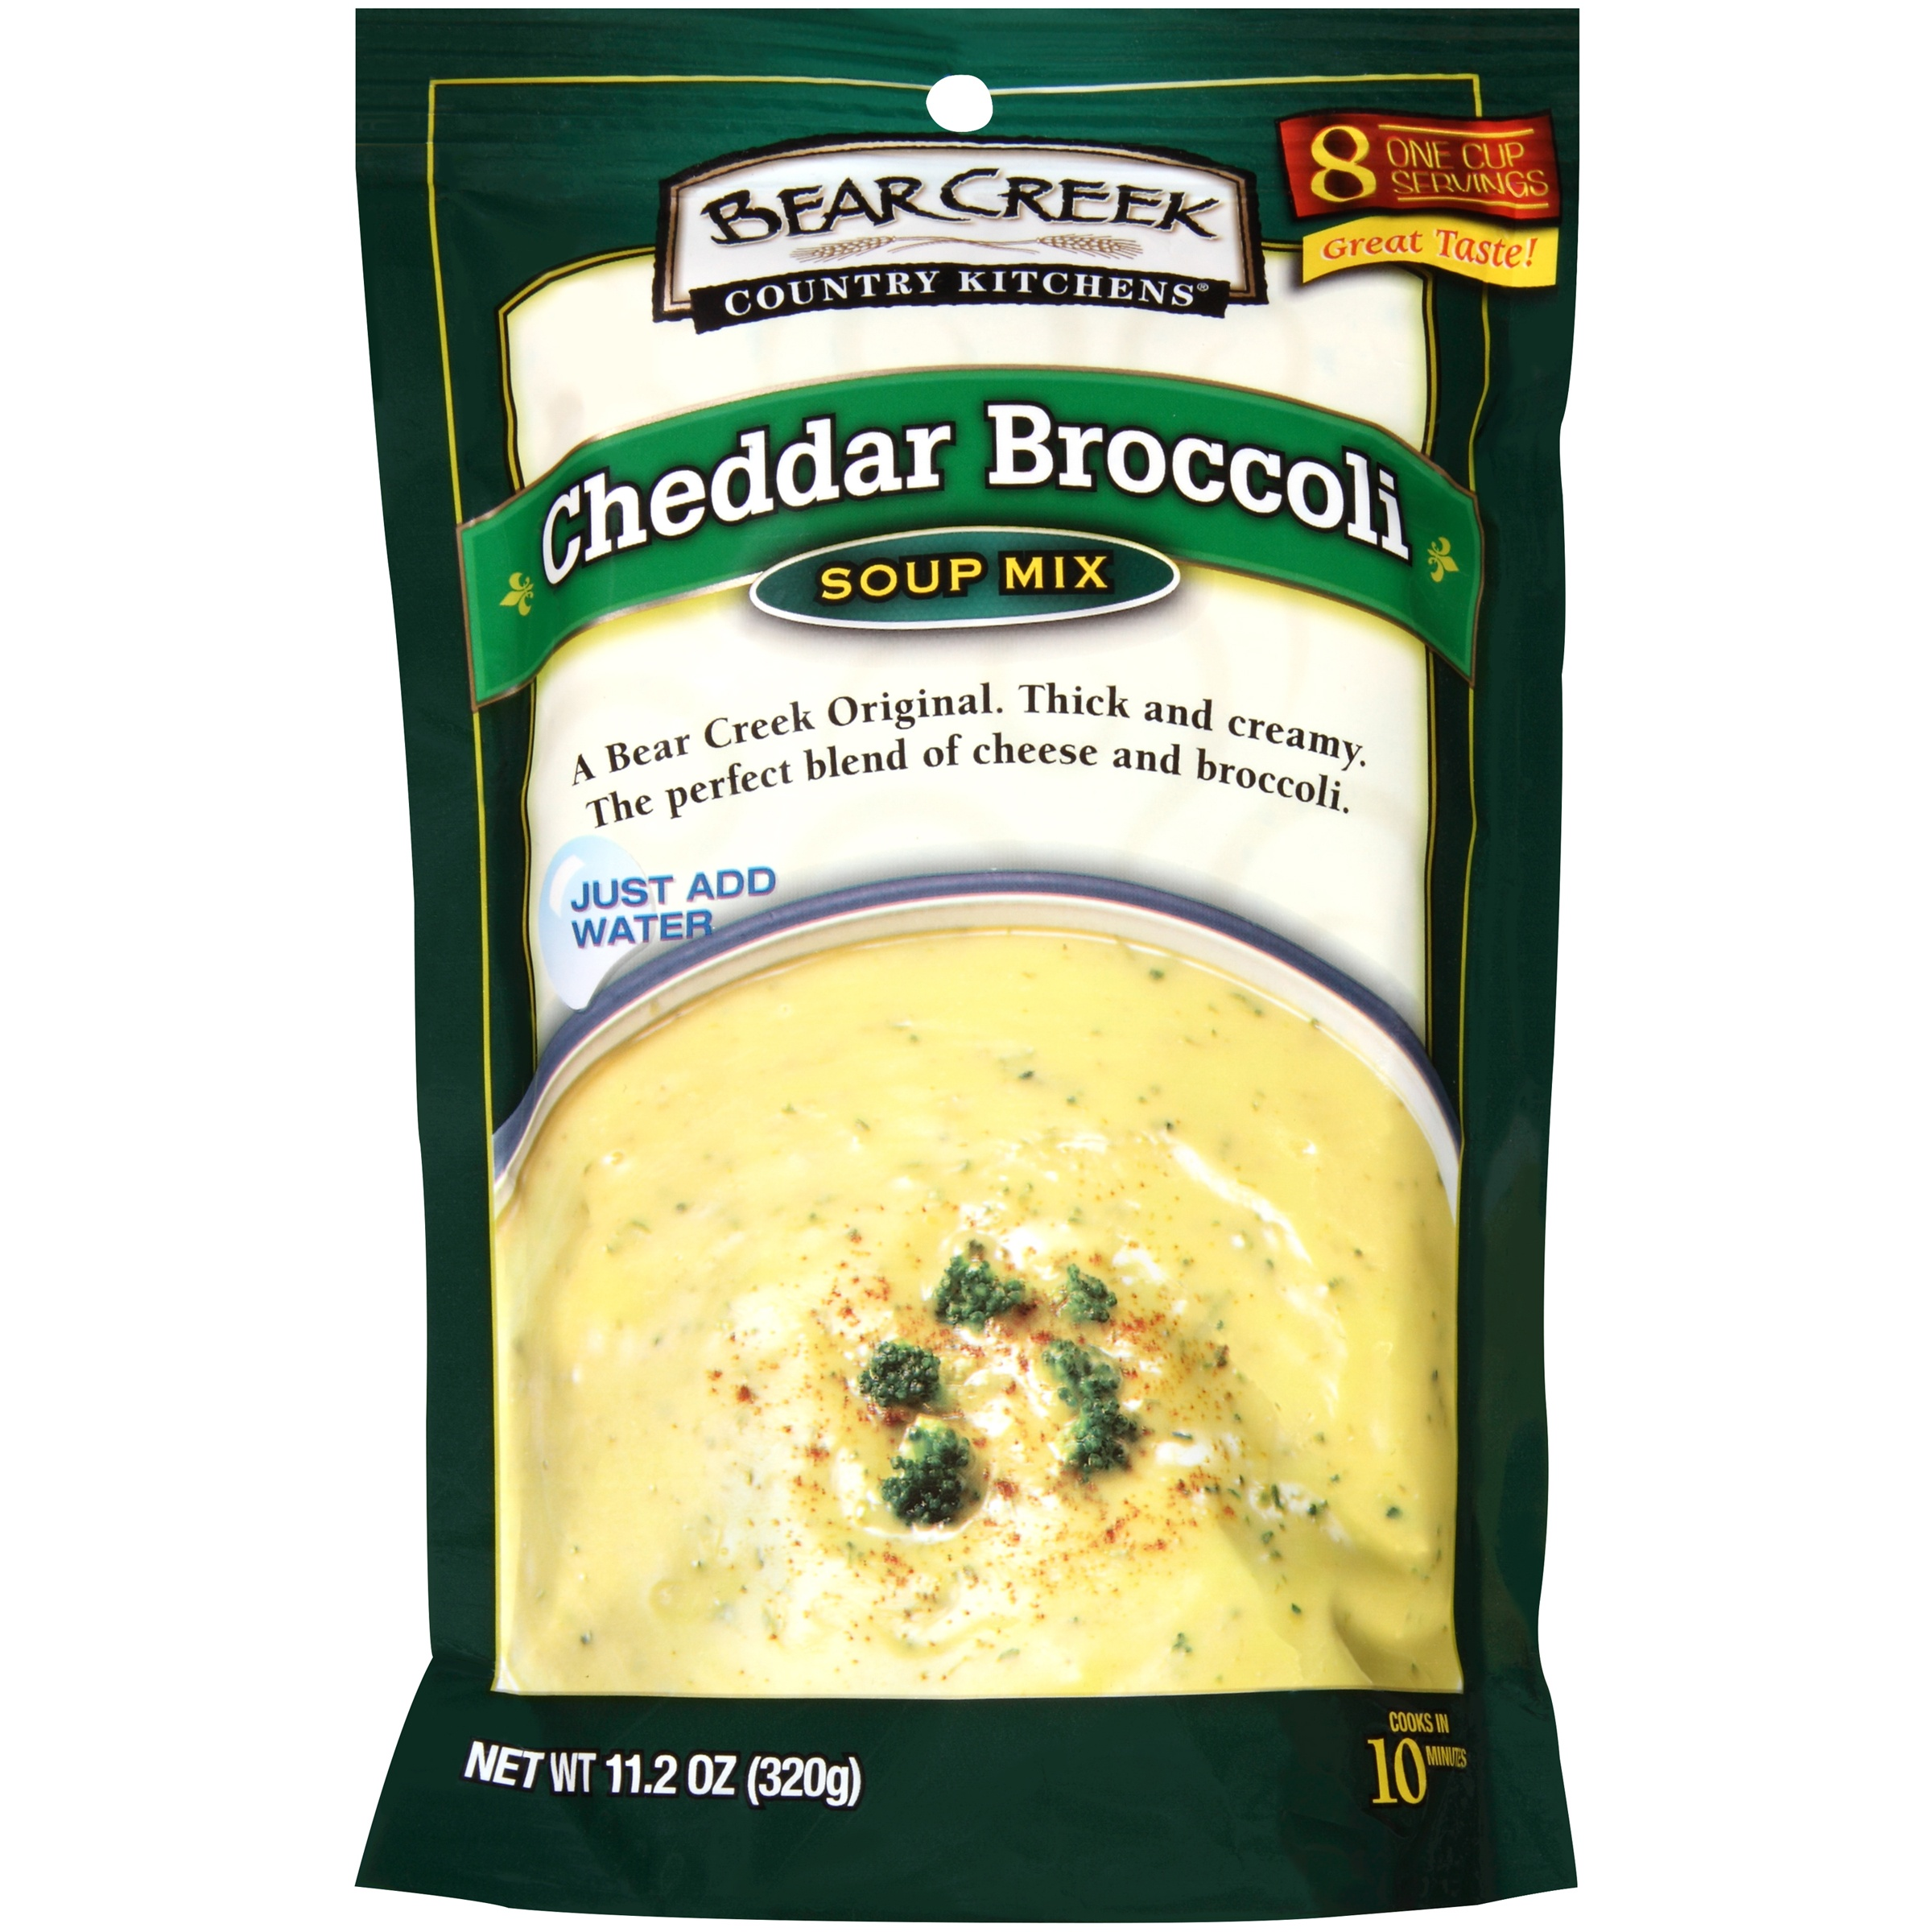 Bear Creek Country Kitchens Cheddar Broccoli Soup Mix 11 20 Oz